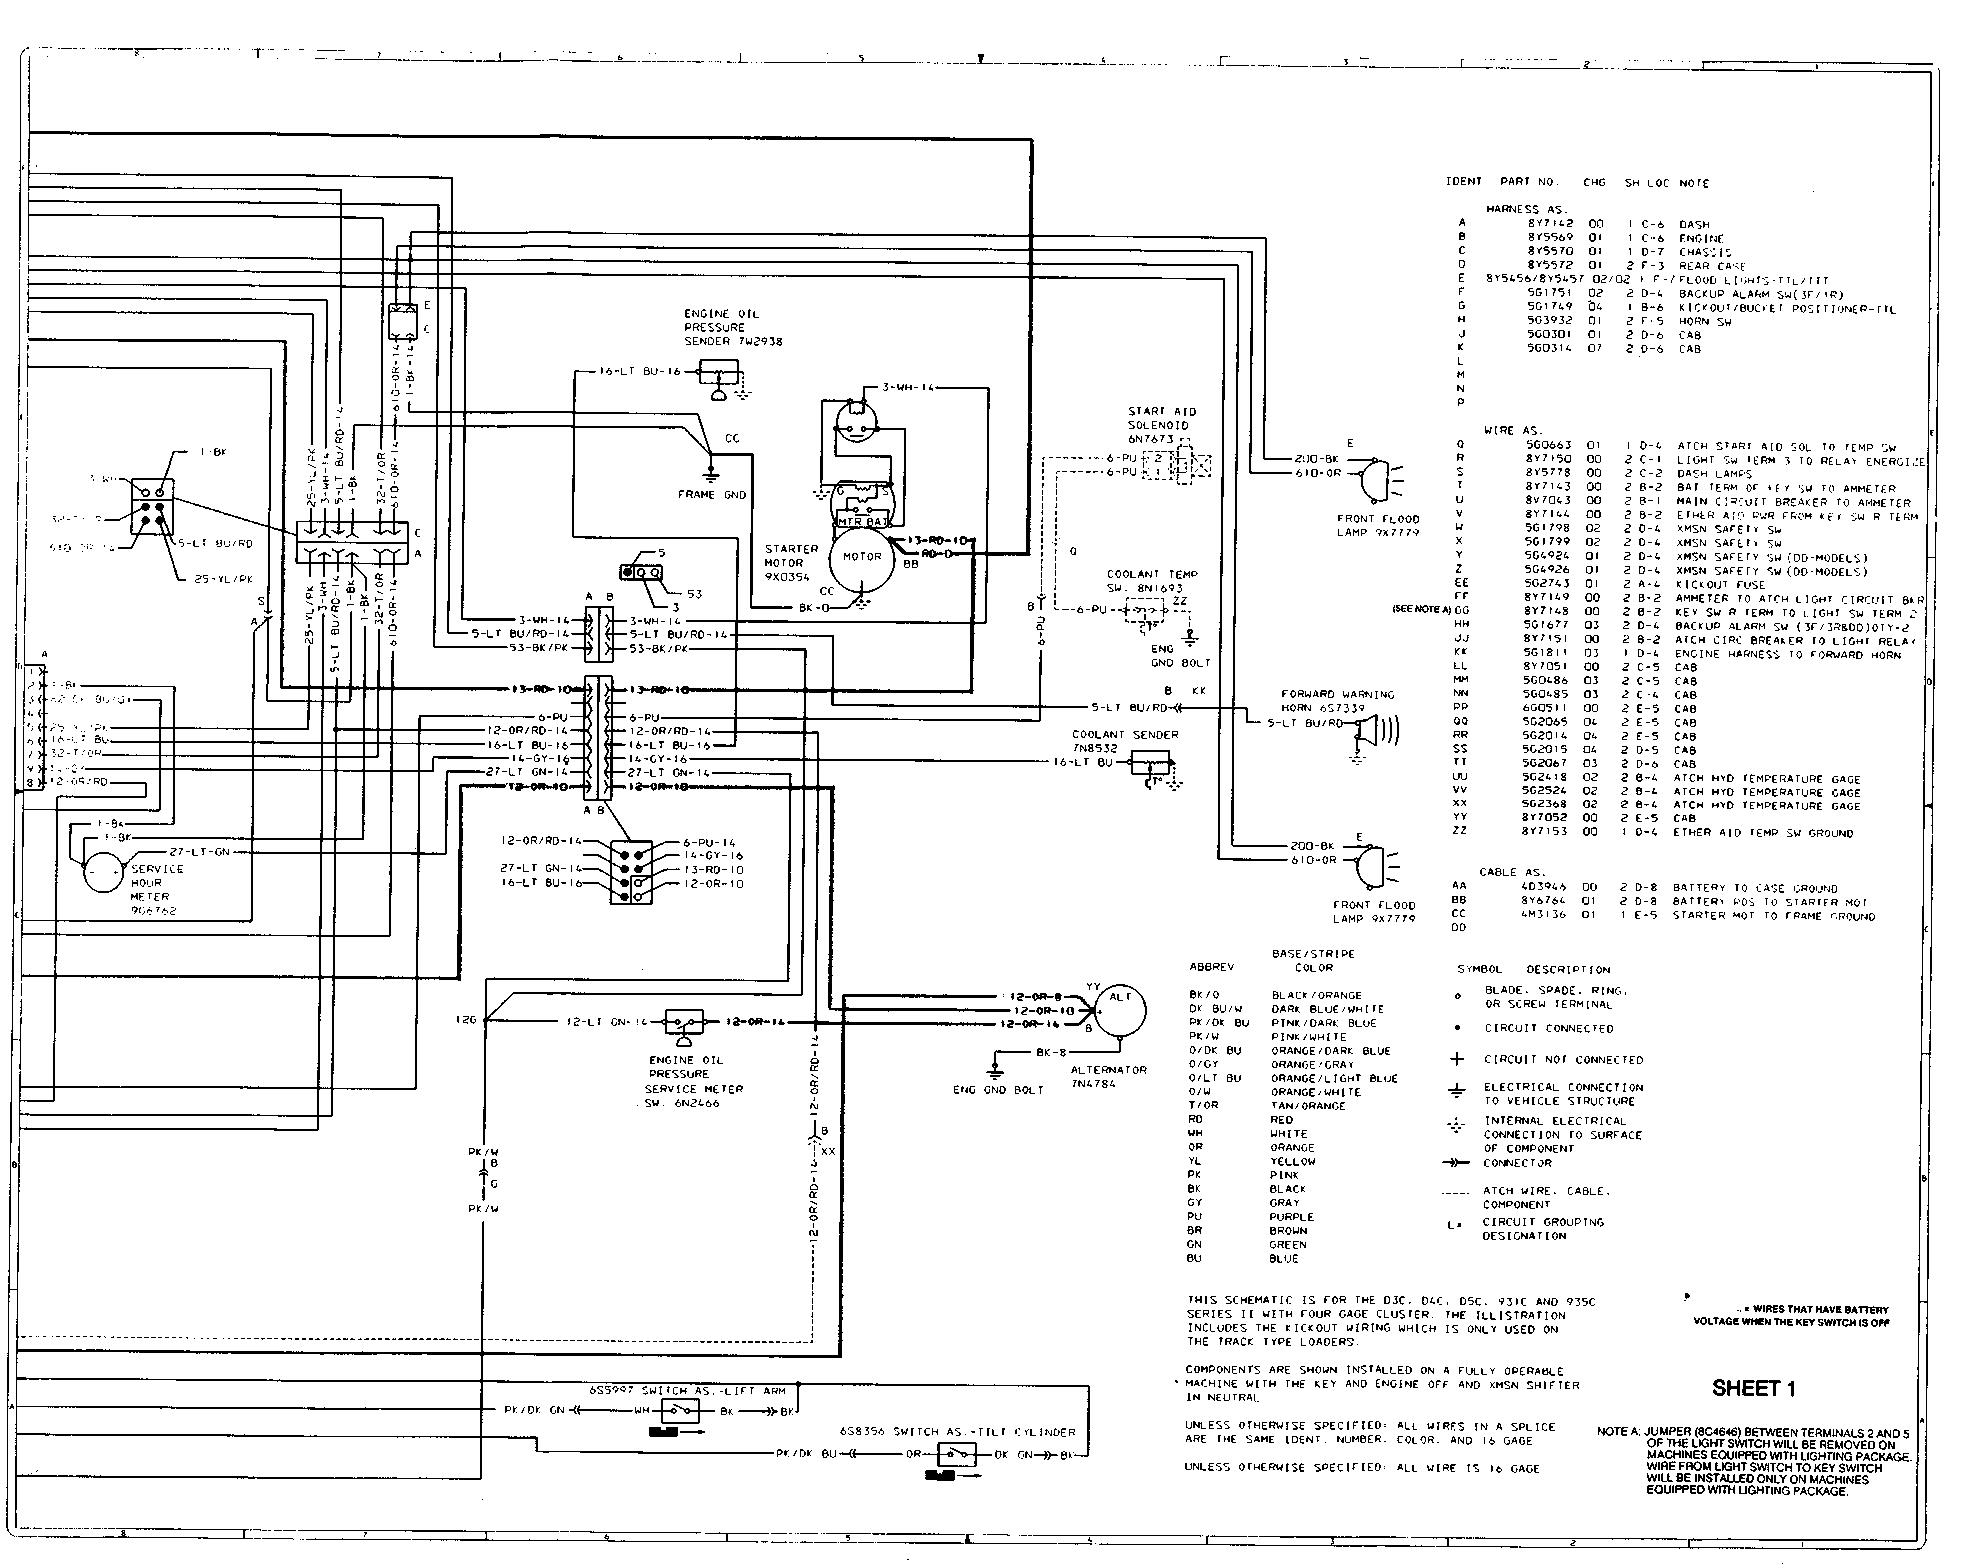 wiring diagram cat skid steer attachment  wiring  free